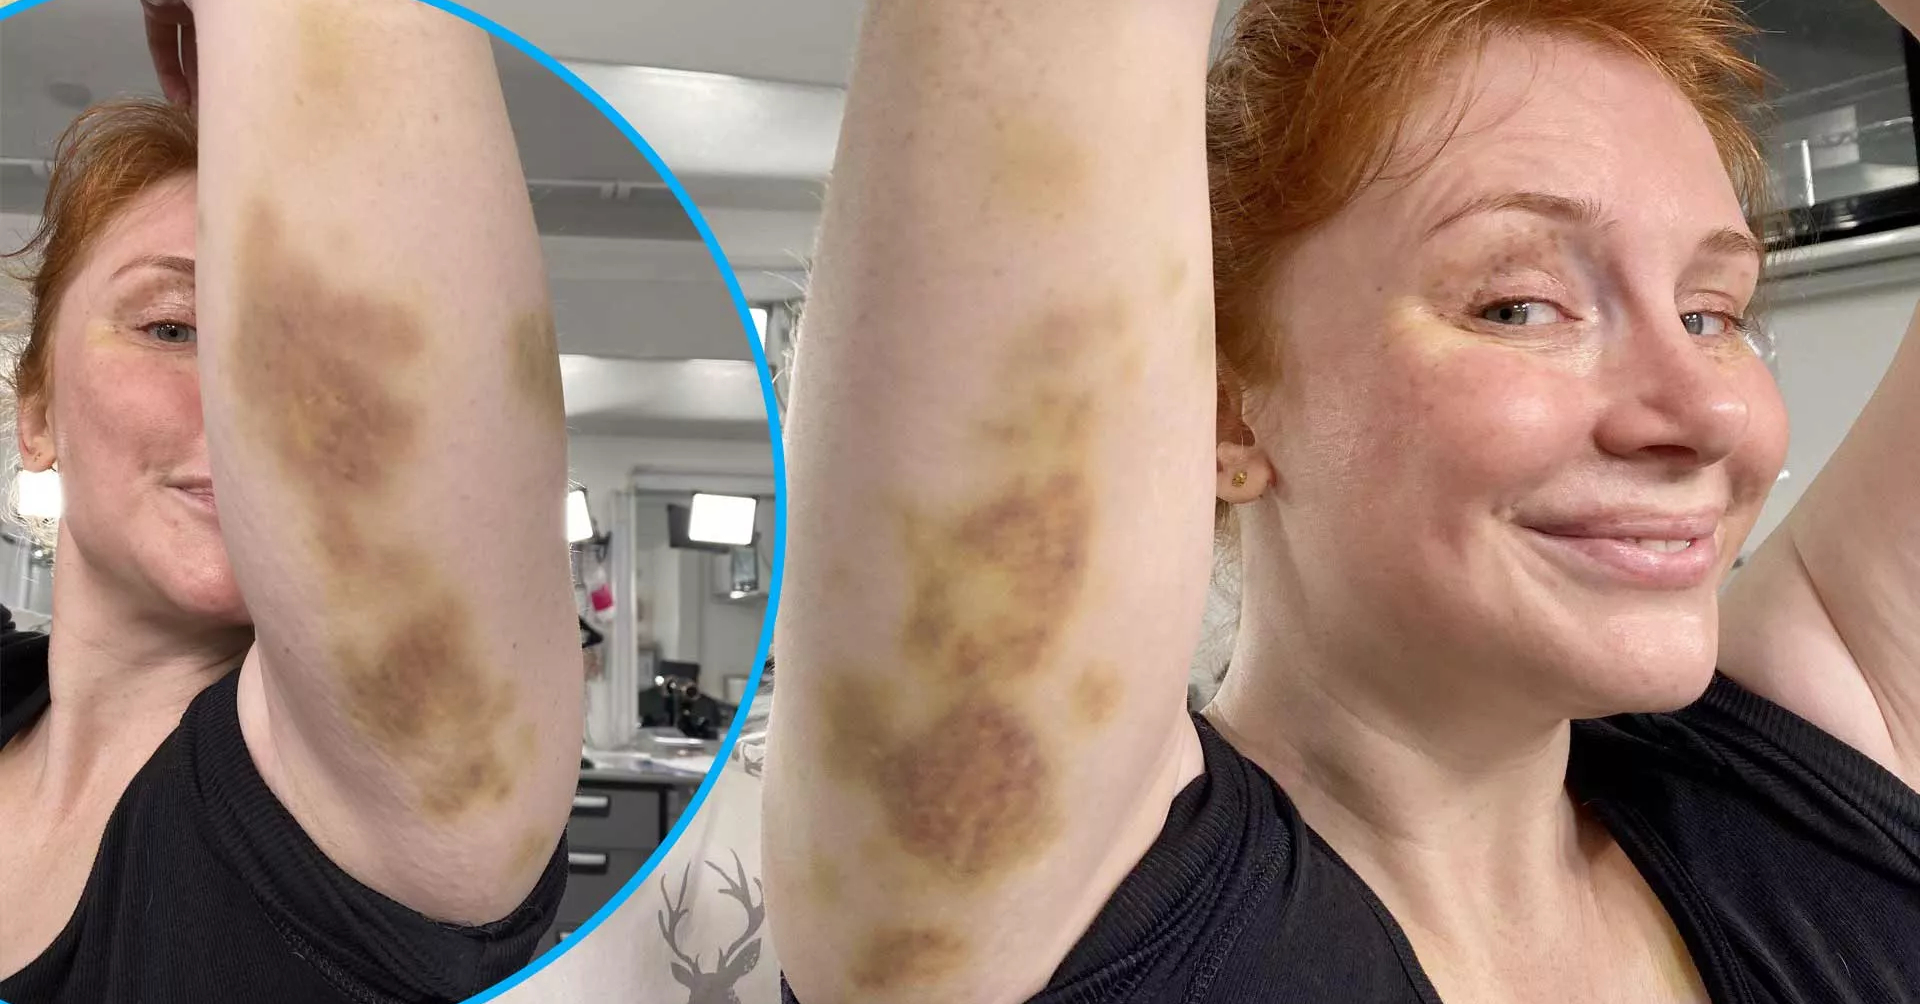 Bryce Dallas Howard Shows Off Gnarly Bruises From Jurassic World Stunts After Pressure From Chris Pratt What's the deal with you. bryce dallas howard shows off gnarly